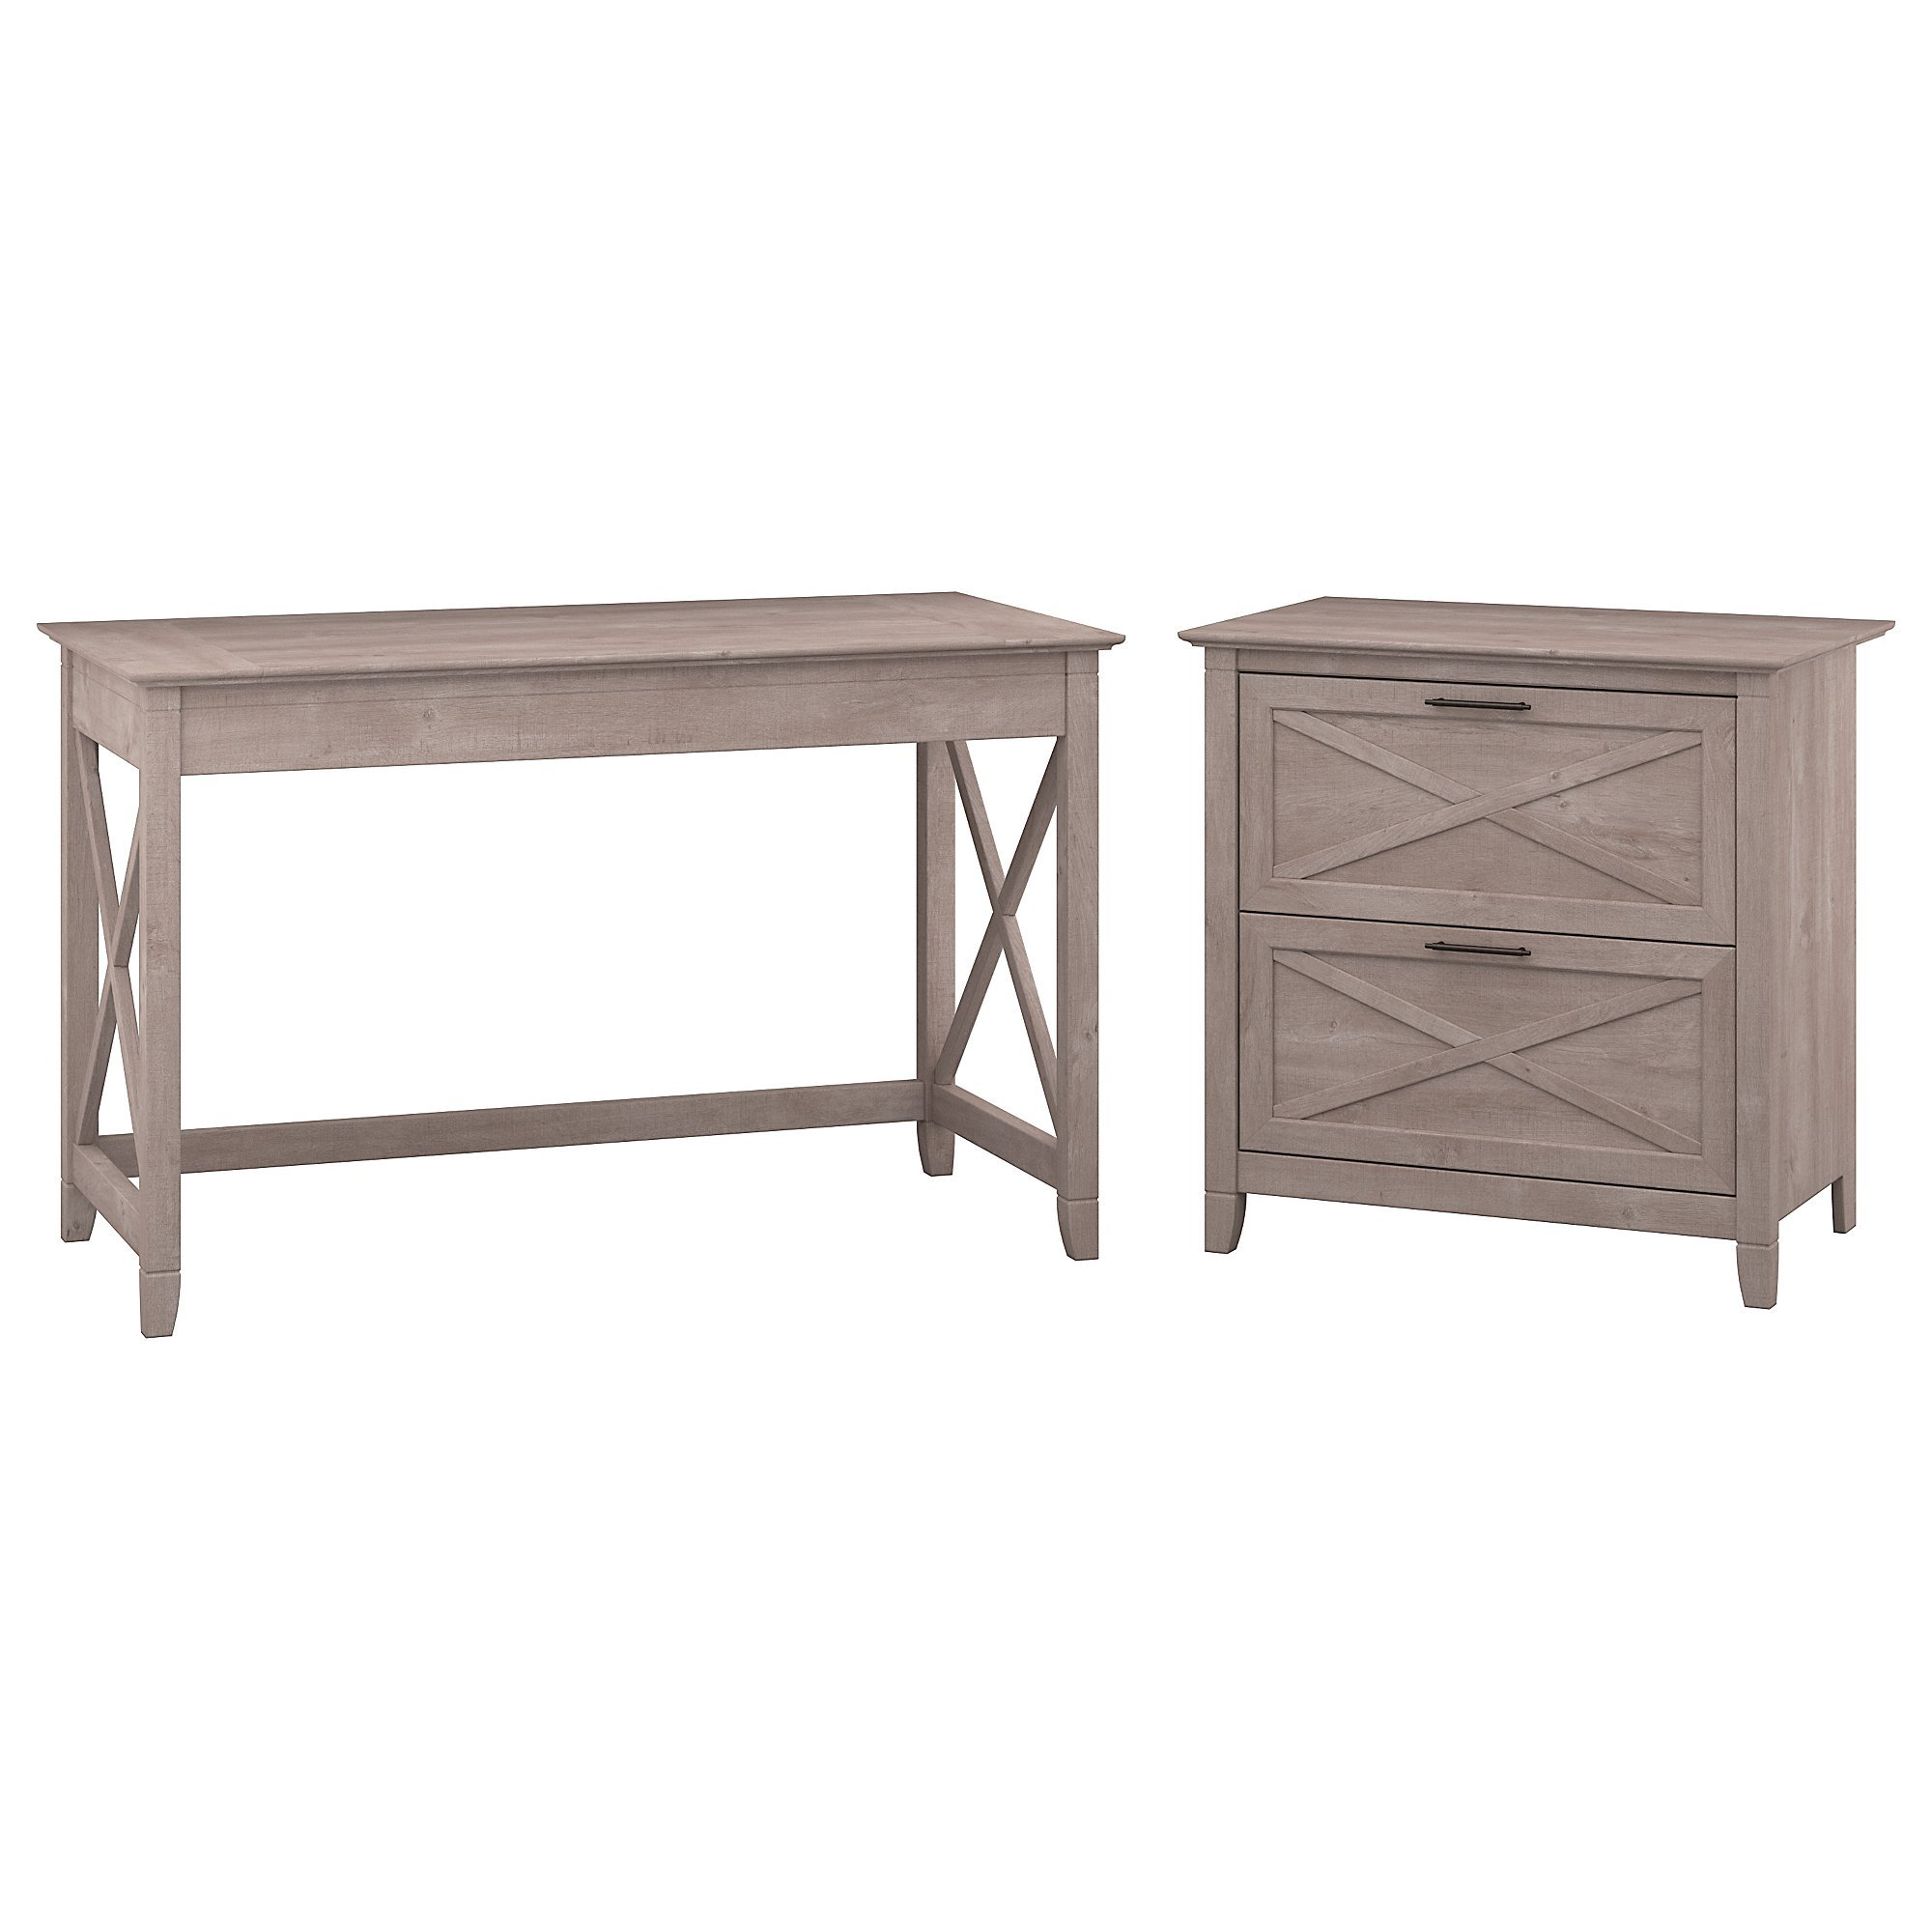 Bush Furniture Key West 48W Writing Desk with 2 Drawer Lateral File Cabinet in Washed Gray by Bush Furniture